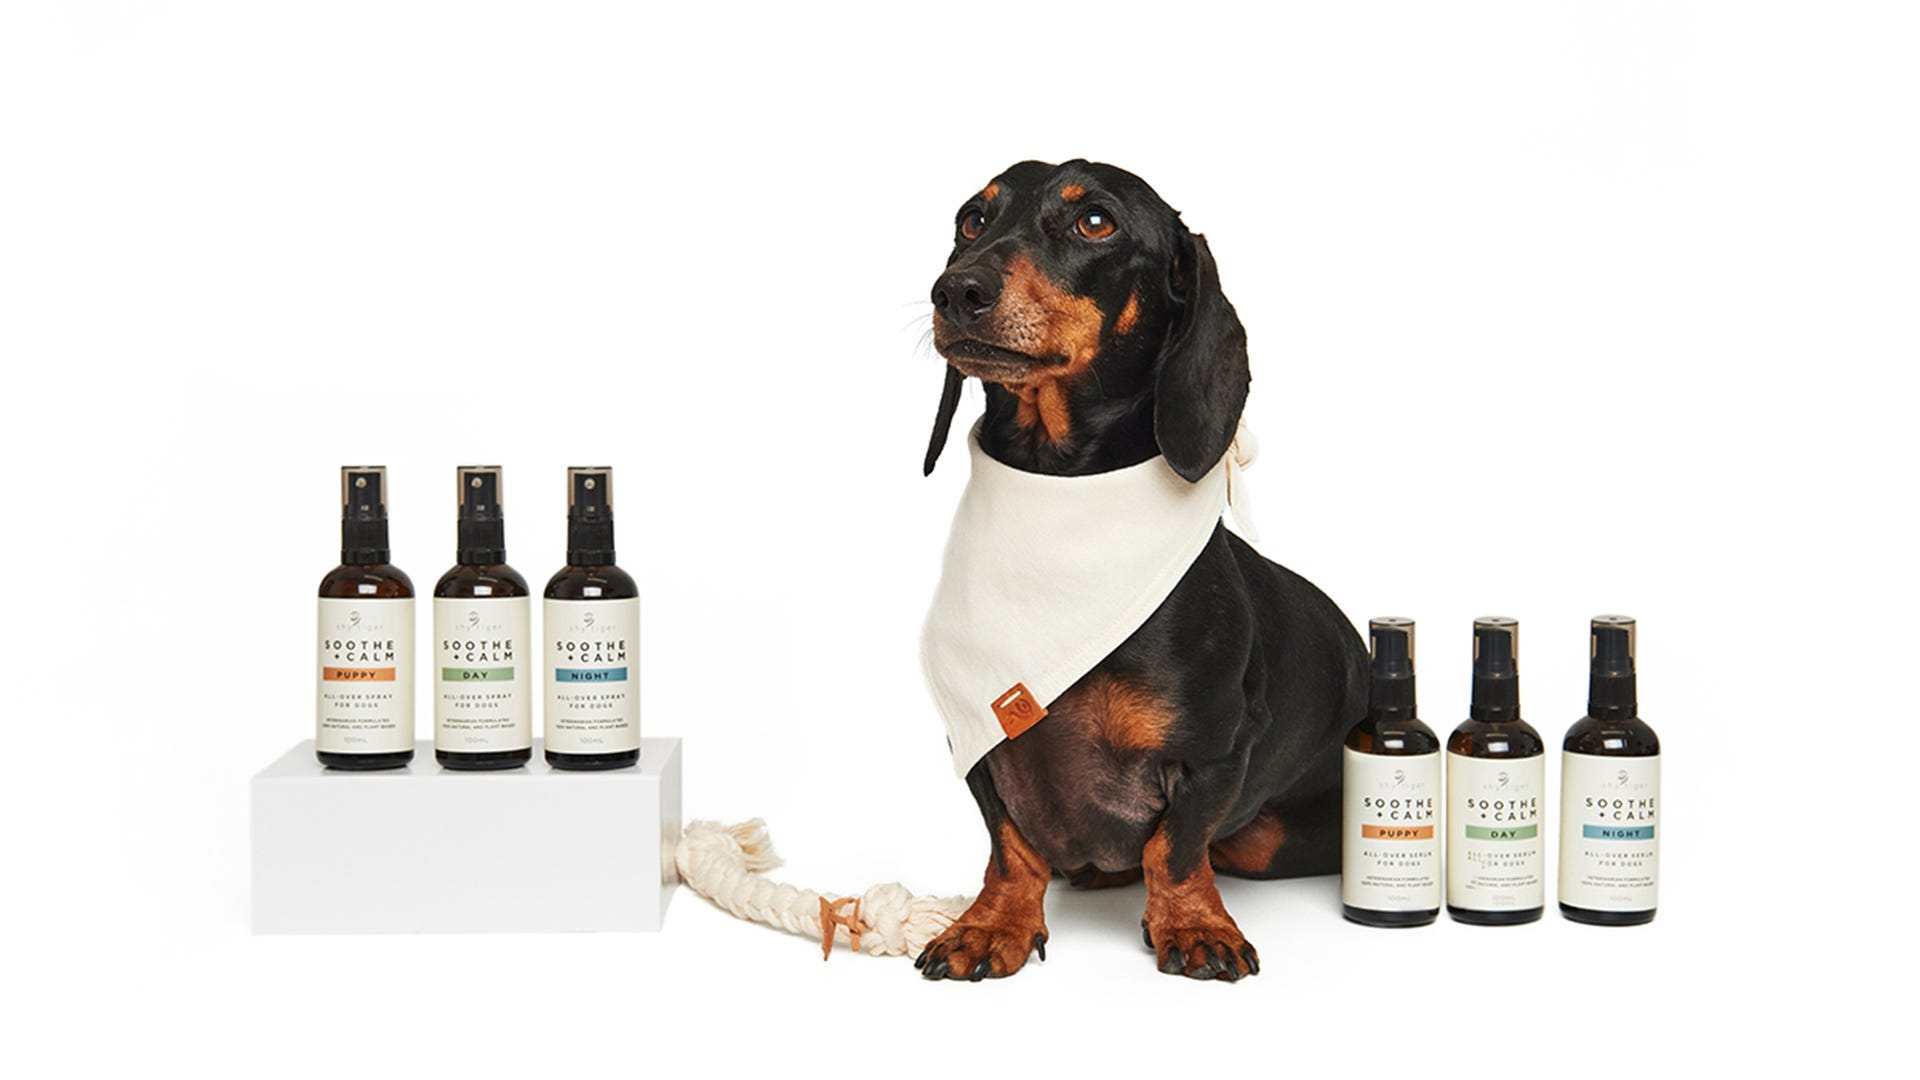 Shy Tiger products with dachshund